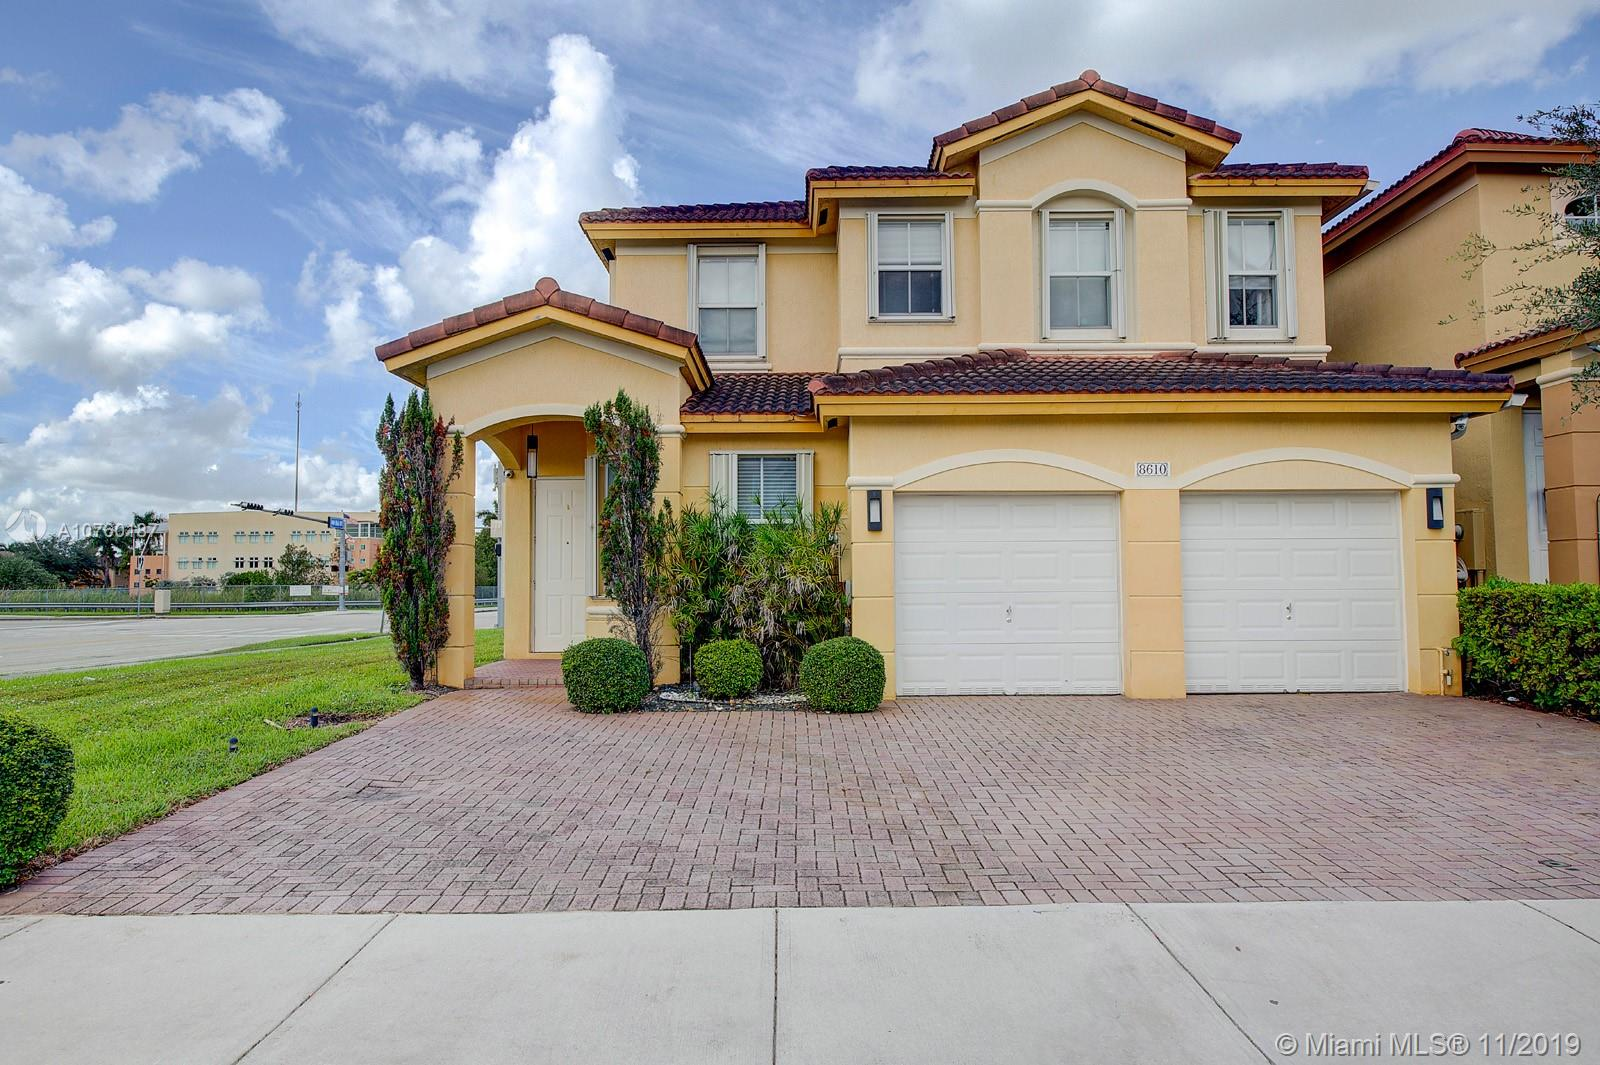 8610 NW 111th Ct, Doral in Miami-dade County County, FL 33178 Home for Sale